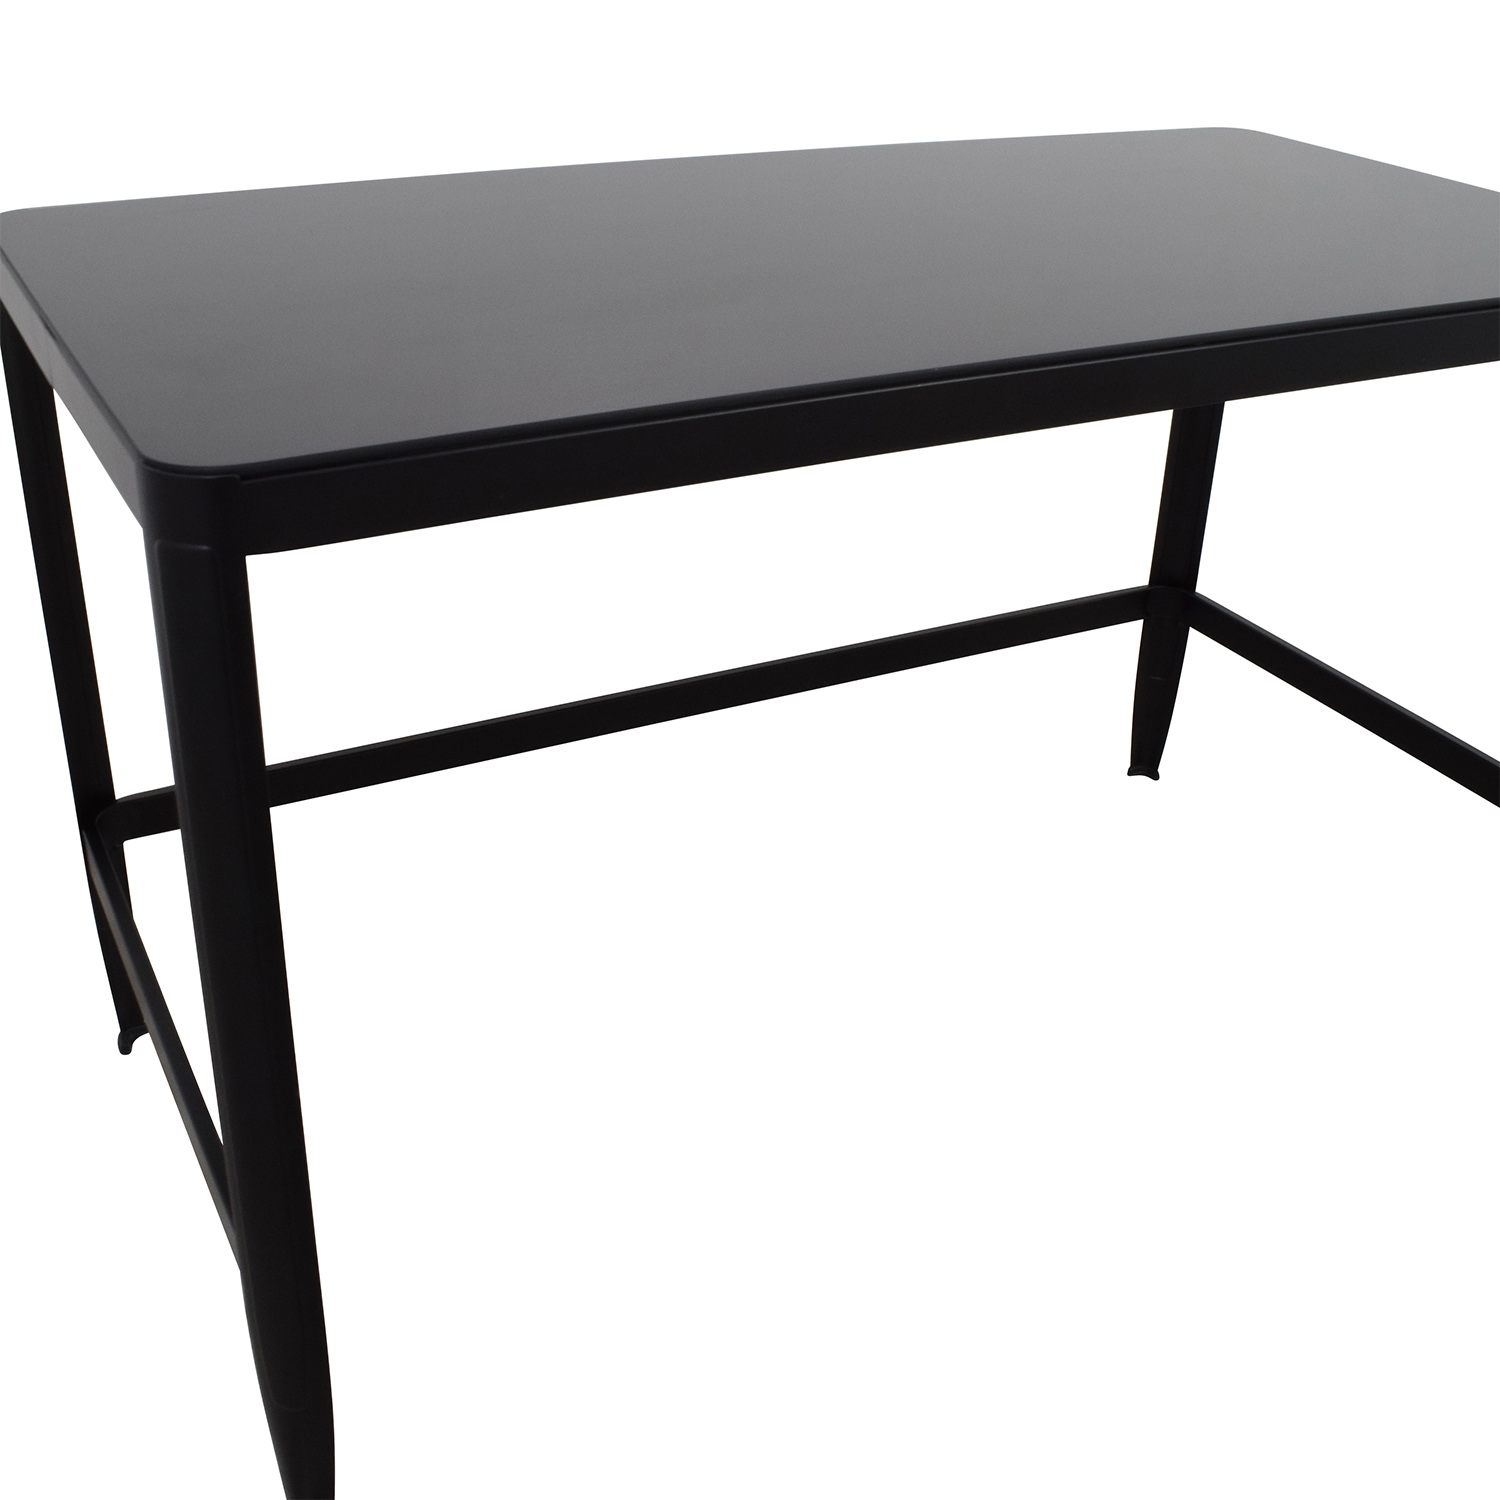 Buy Black Glass And Black Metal Square Side Table From: Modern Black Metal Table With Glass Top / Tables